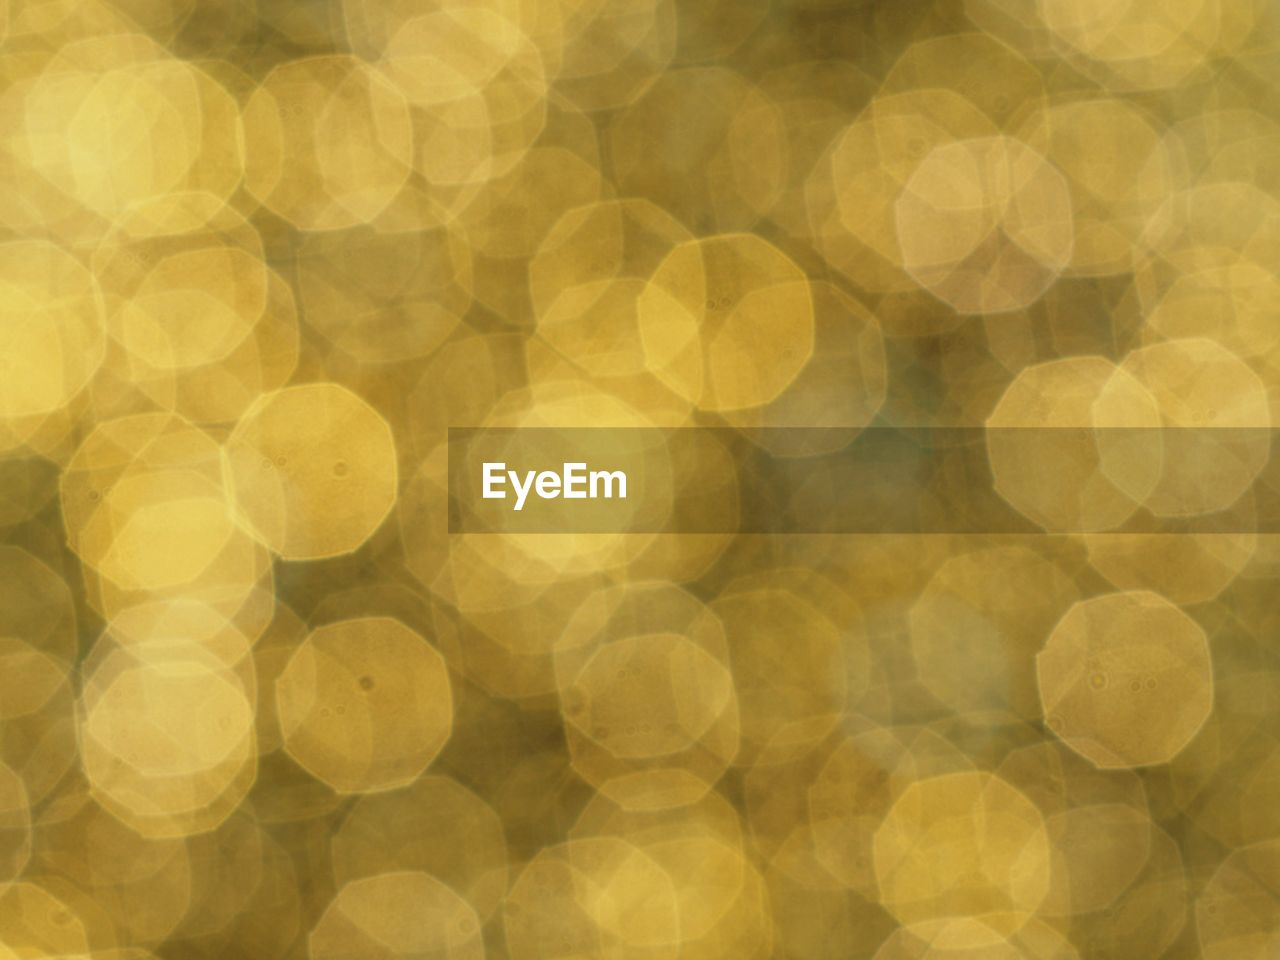 backgrounds, pattern, abstract, circle, yellow, defocused, geometric shape, full frame, illuminated, gold colored, glowing, no people, light - natural phenomenon, spotted, decoration, shape, lens flare, textured, large group of objects, abstract backgrounds, light, textured effect, bright